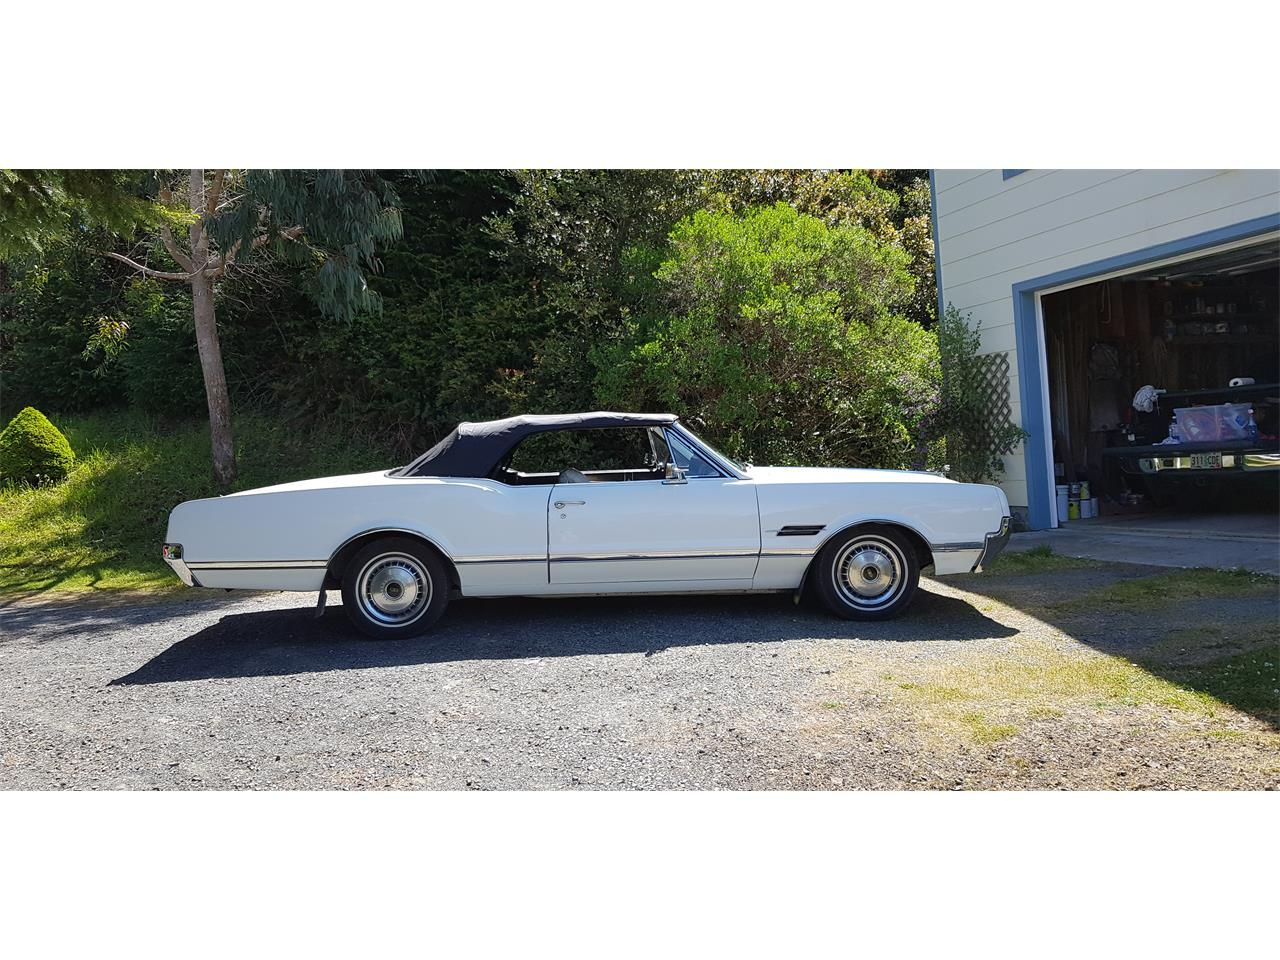 Large Picture of 1966 Oldsmobile Cutlass Supreme - $15,000.00 Offered by a Private Seller - Q0S8